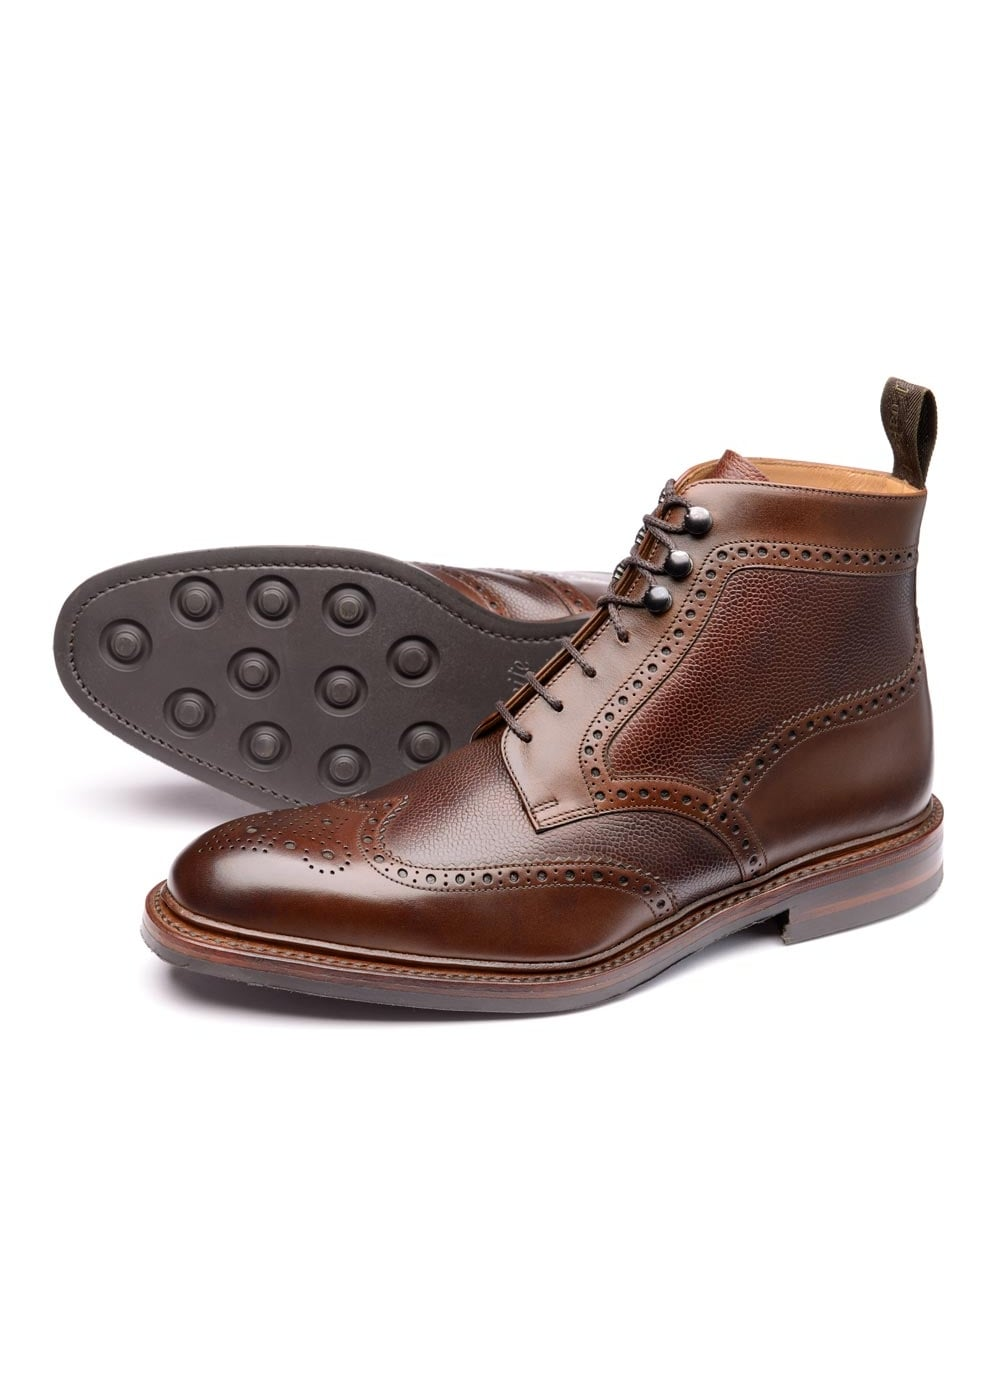 Loake Bosworth Brogue Boot NEW Large Image